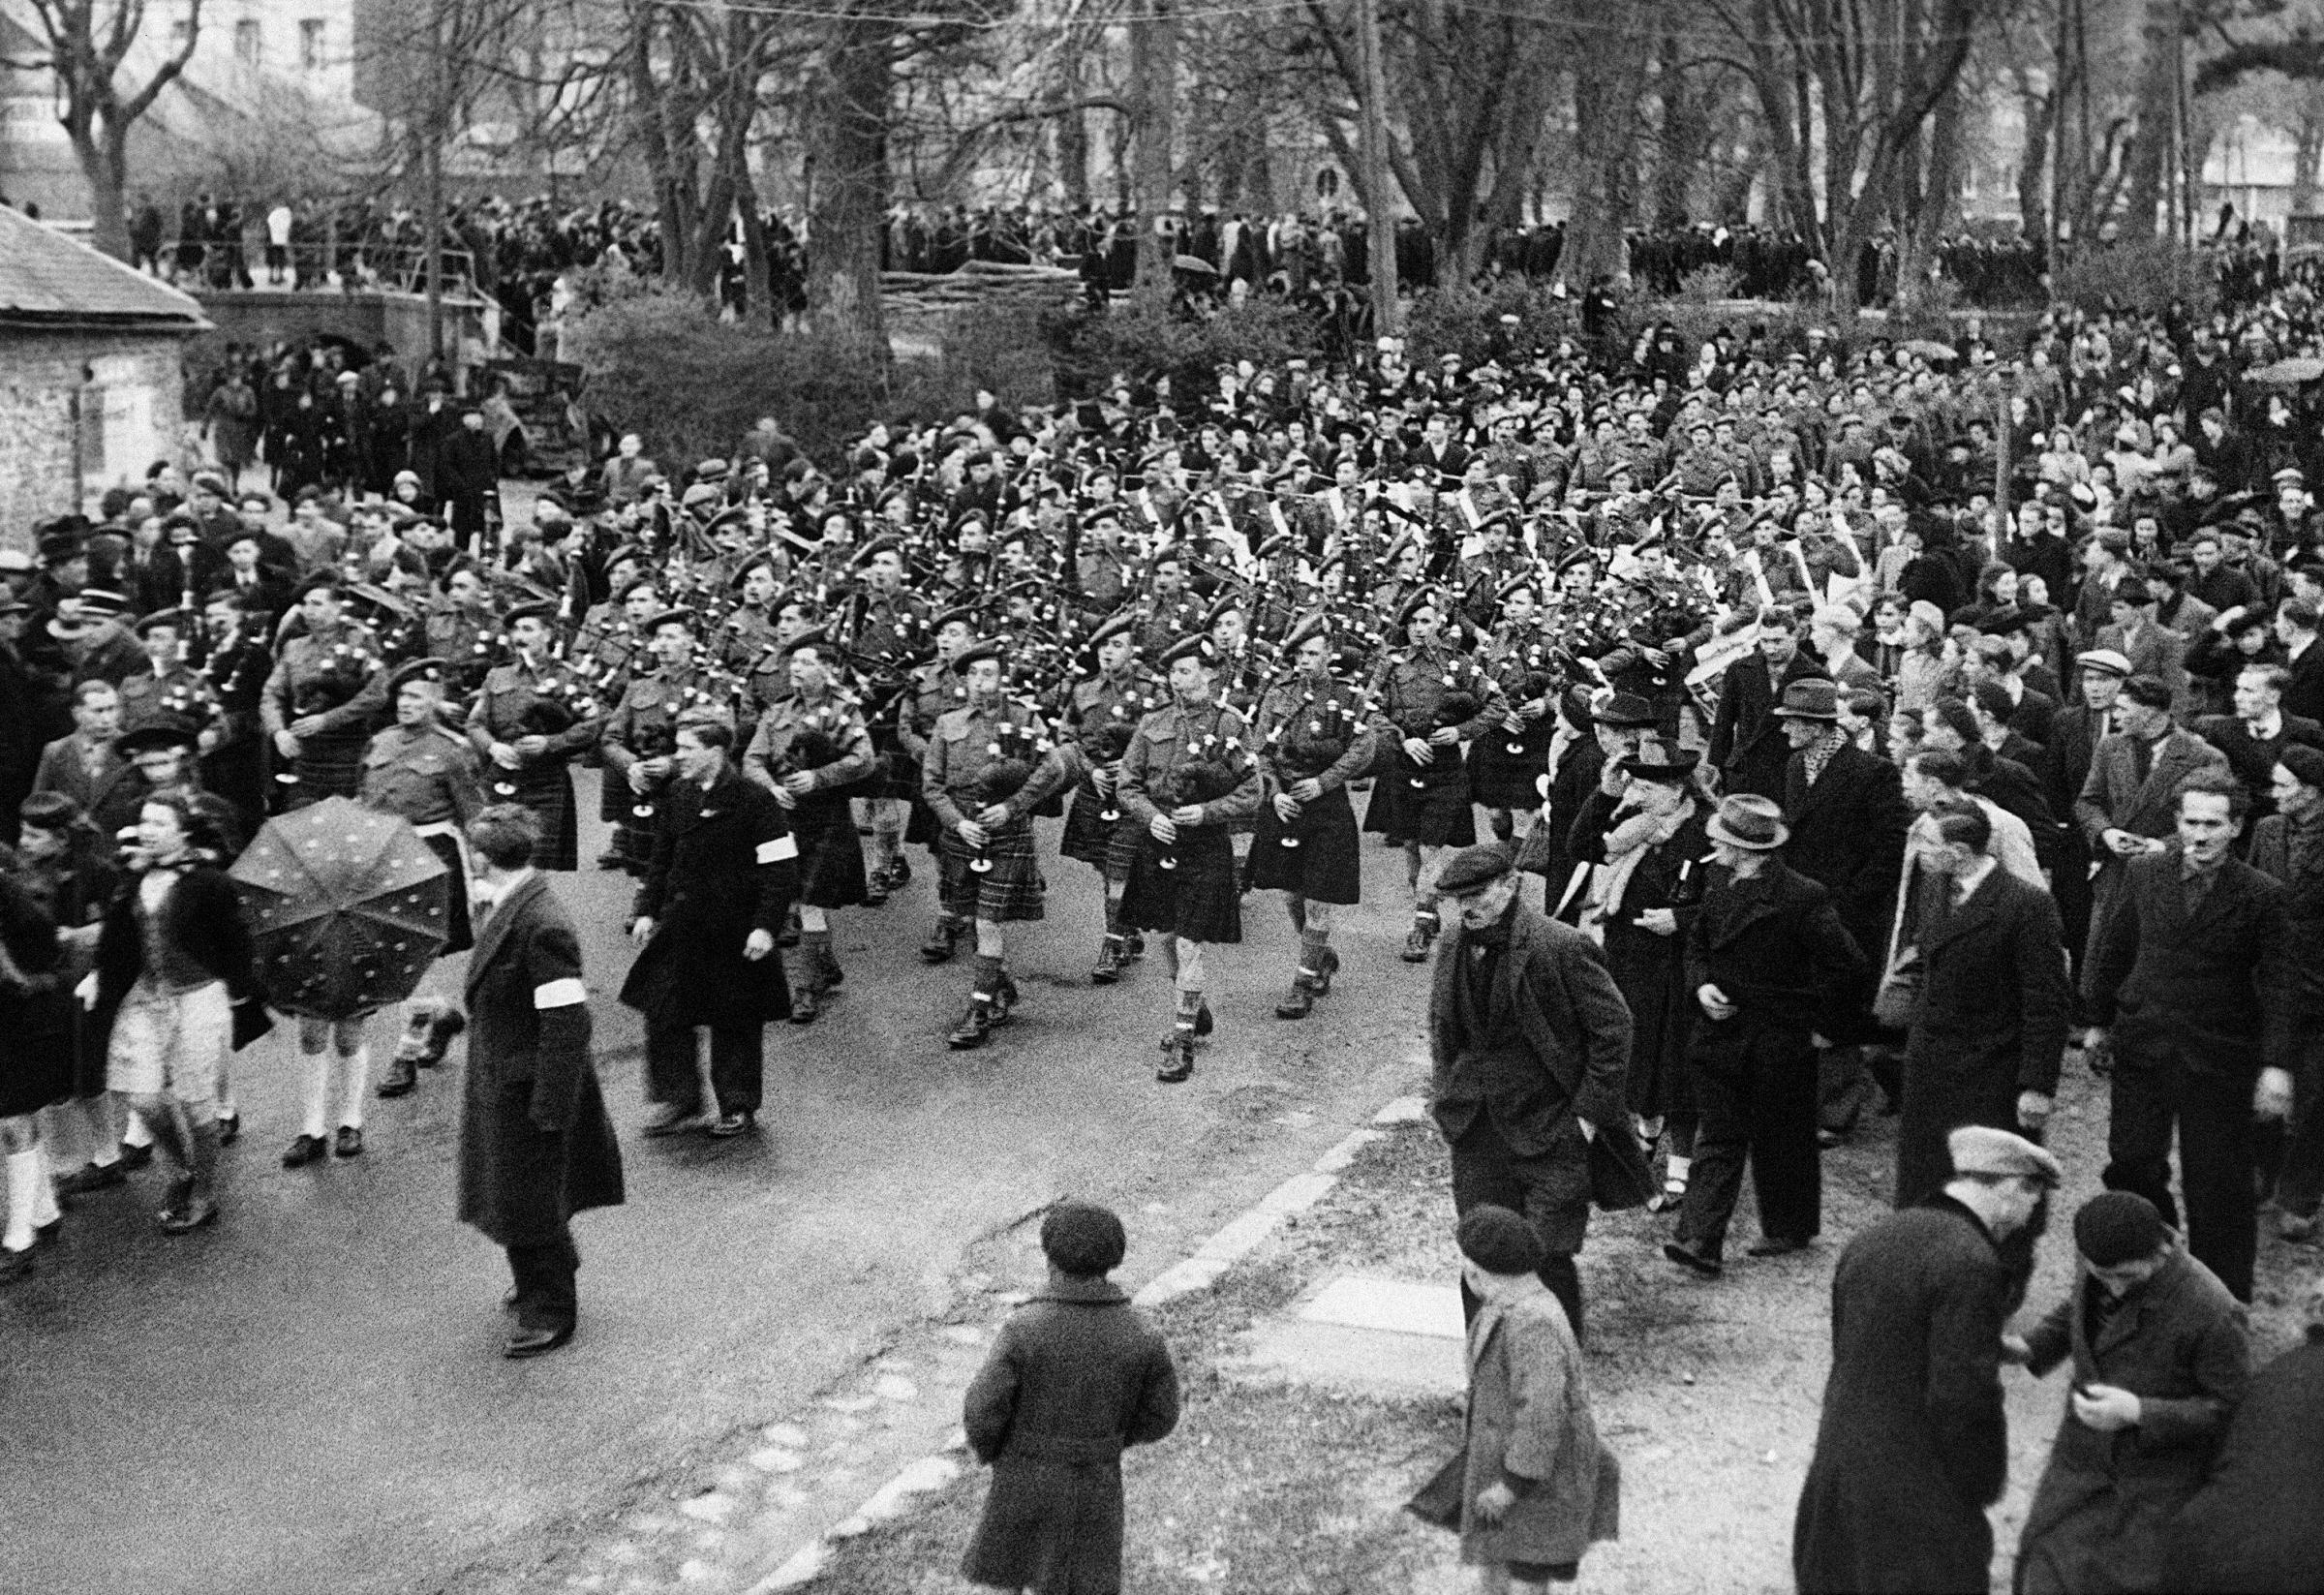 The re-formed 51st Highland Division back in Saint-Valery-en-Caux in 1944. Thousands of their number were captured in the French town four years earlier